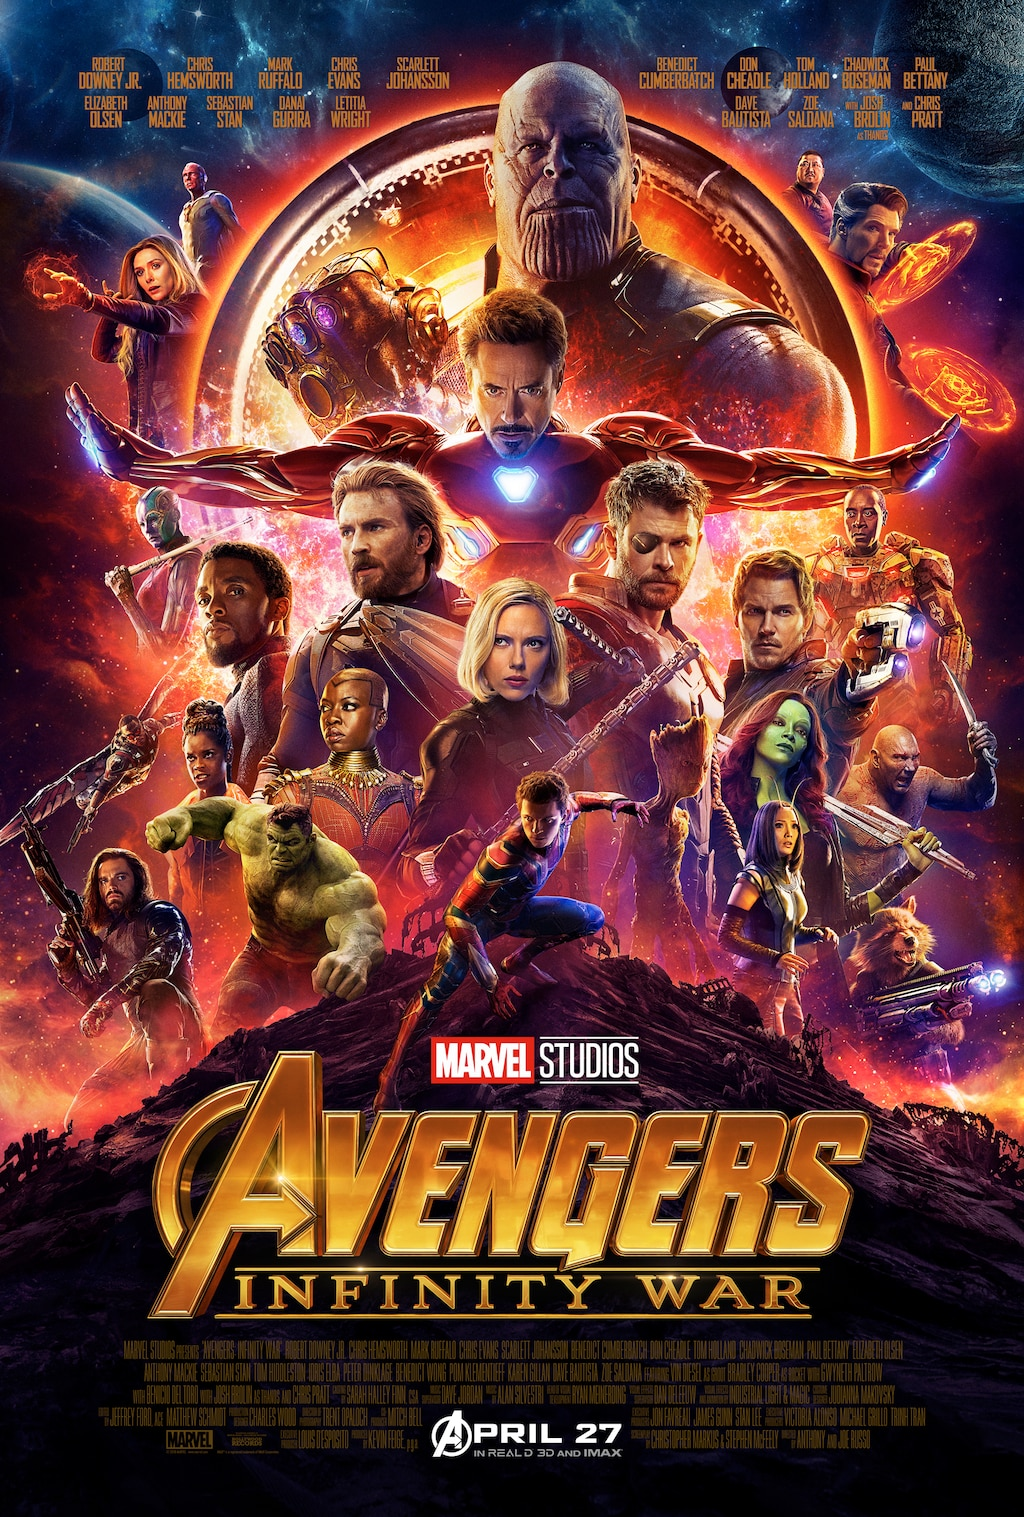 100 Pictures of Avengers Infinity War Steam